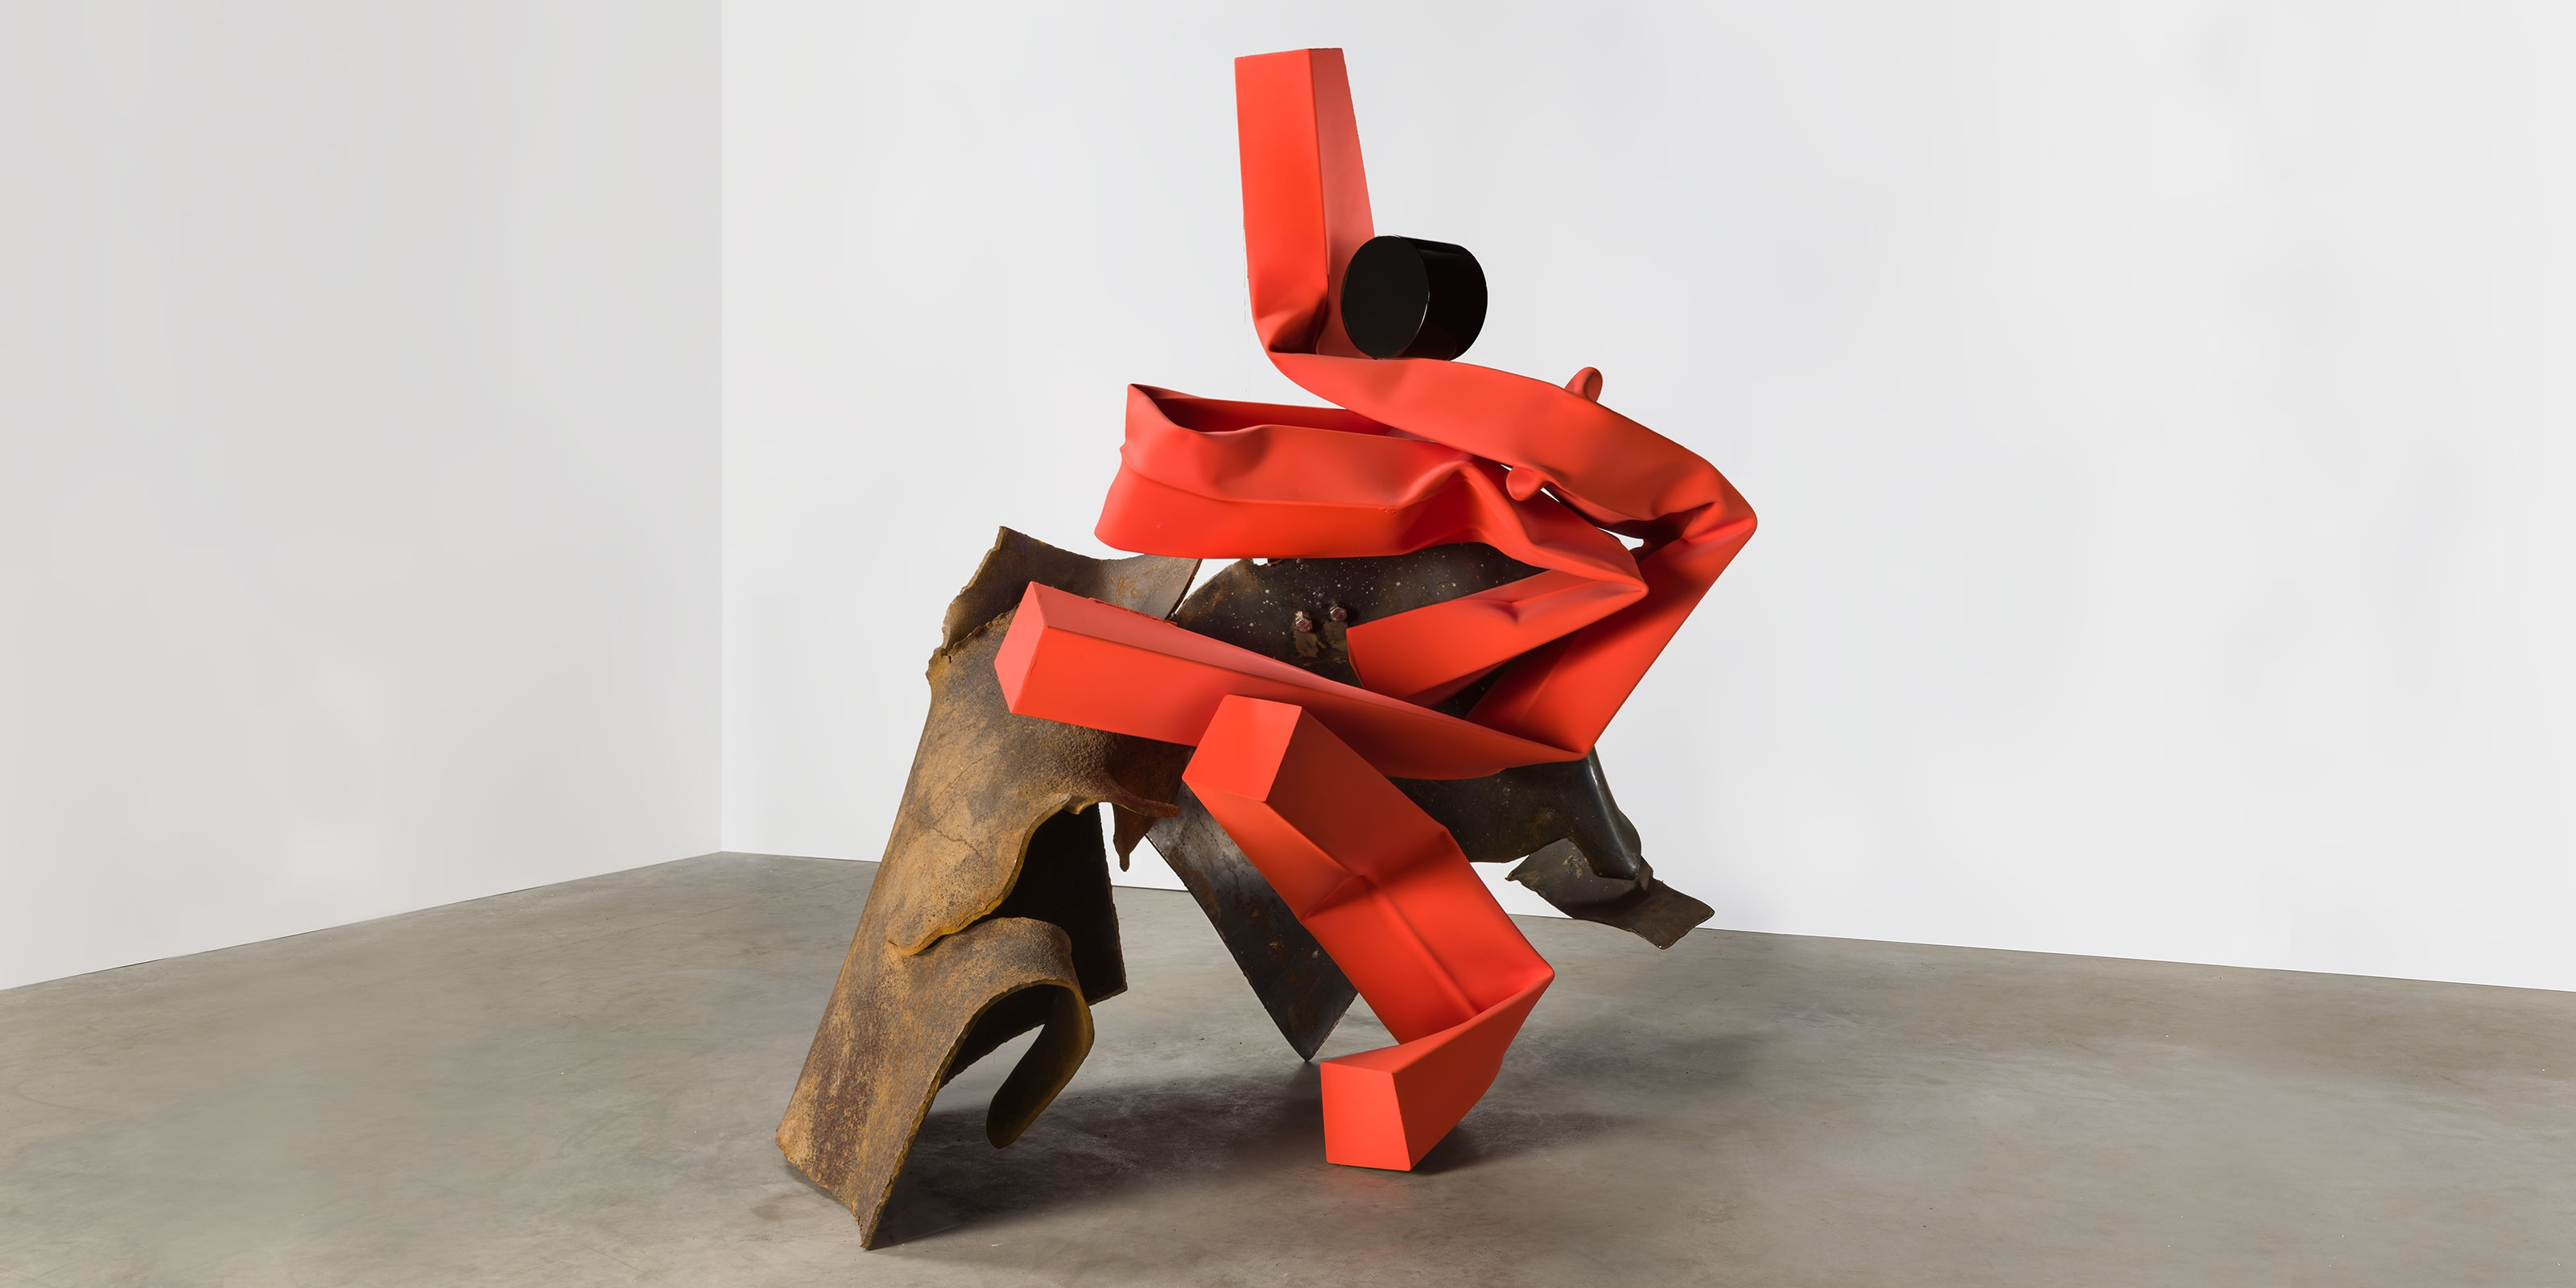 A sculpture by Carol Bove, titled Teresa, dated 2017.